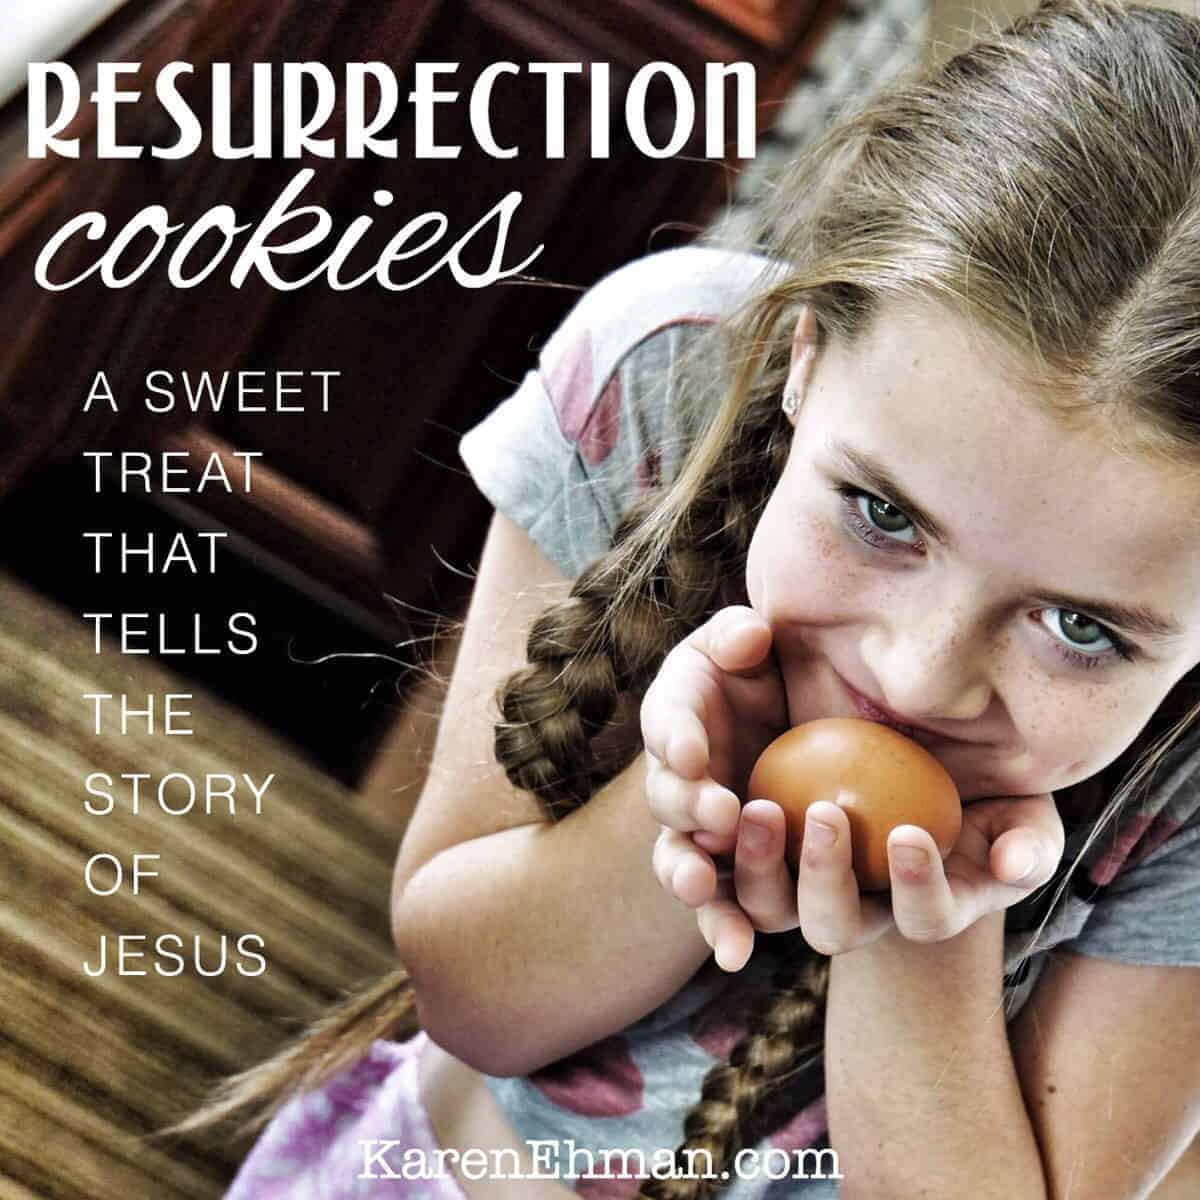 A Sweet Treat that Teaches the Story of Jesus